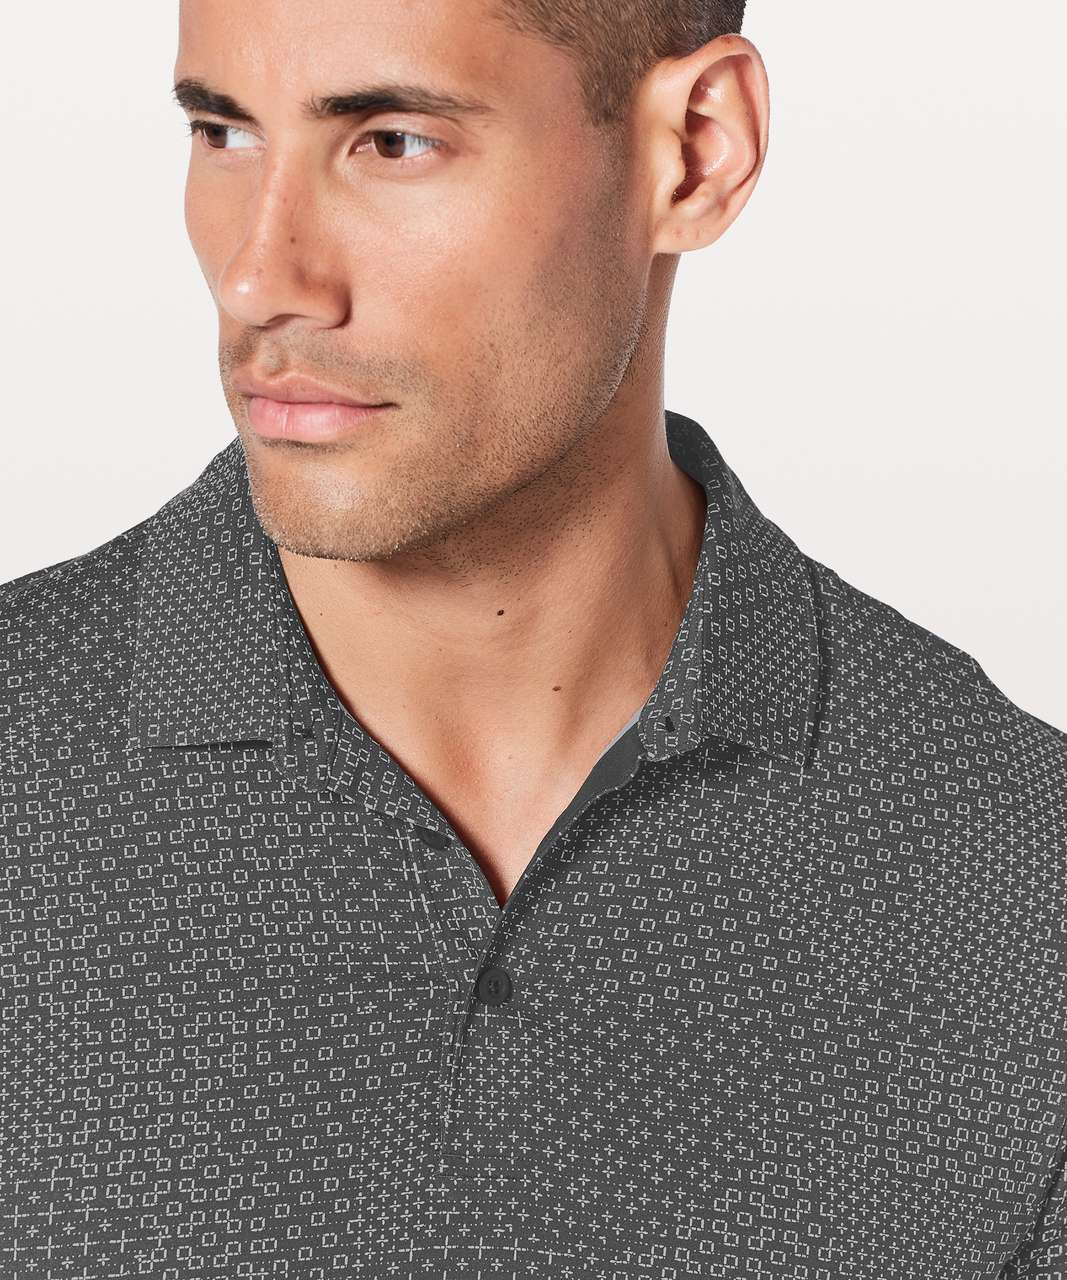 Lululemon Propel Polo - Stitch Camo Ice Grey Deep Coal